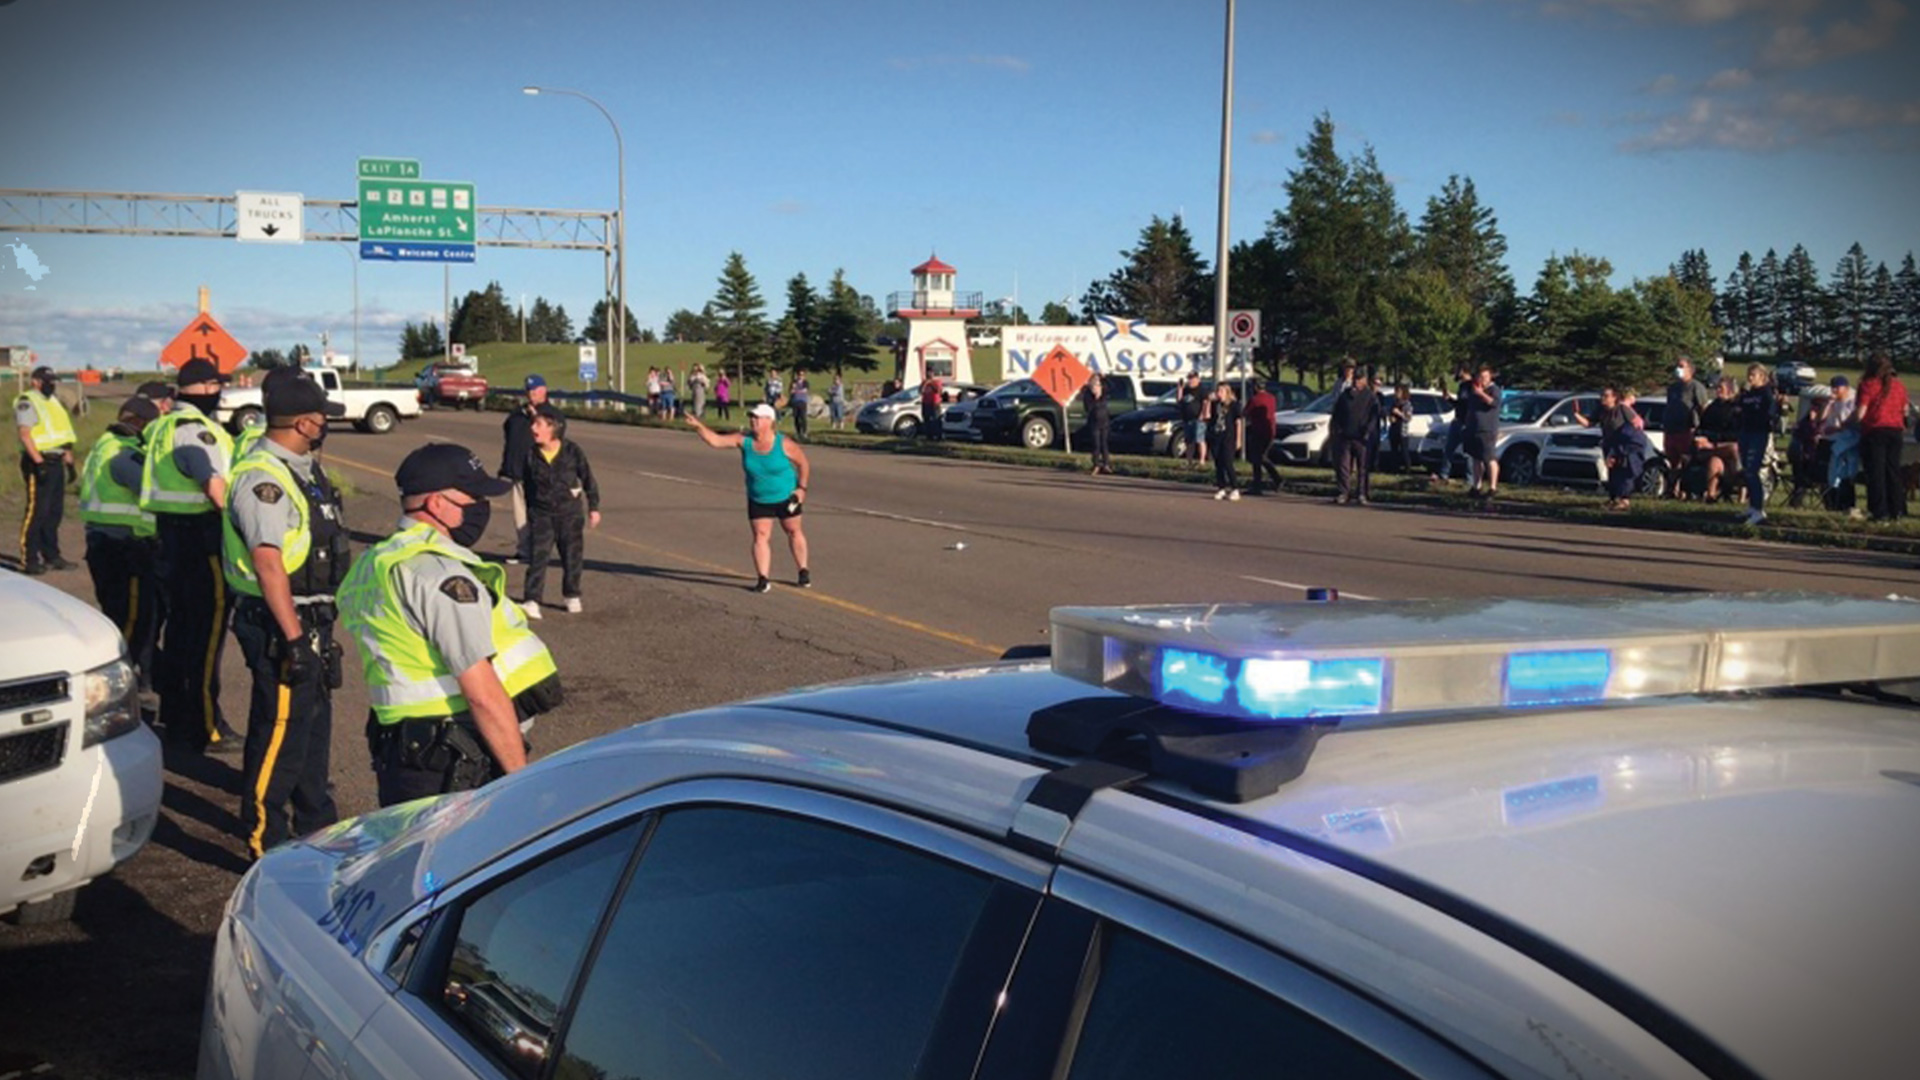 NS/NB border reopens with arrests, MLA who called for highway shutdown kicked from PC caucus